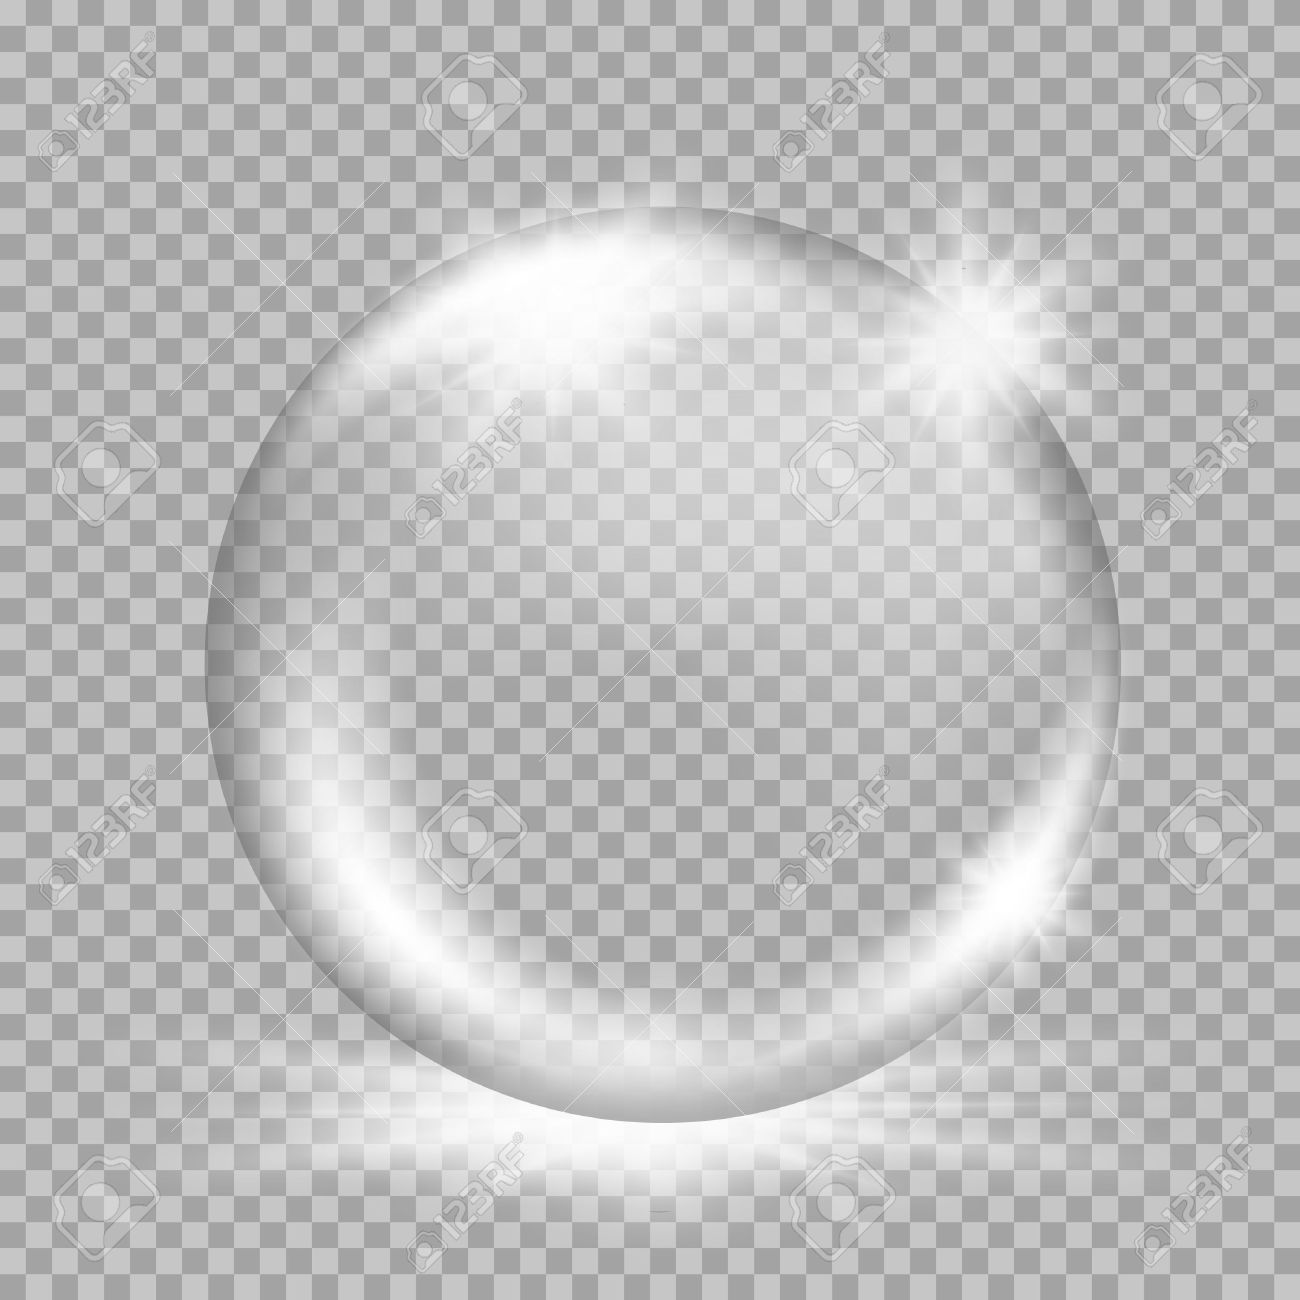 Empty snow globe. Big white transparent glass sphere with glares and, bursts, highlights. Vector illustration with gradients and effects. Winter background for your design and business - 50538880